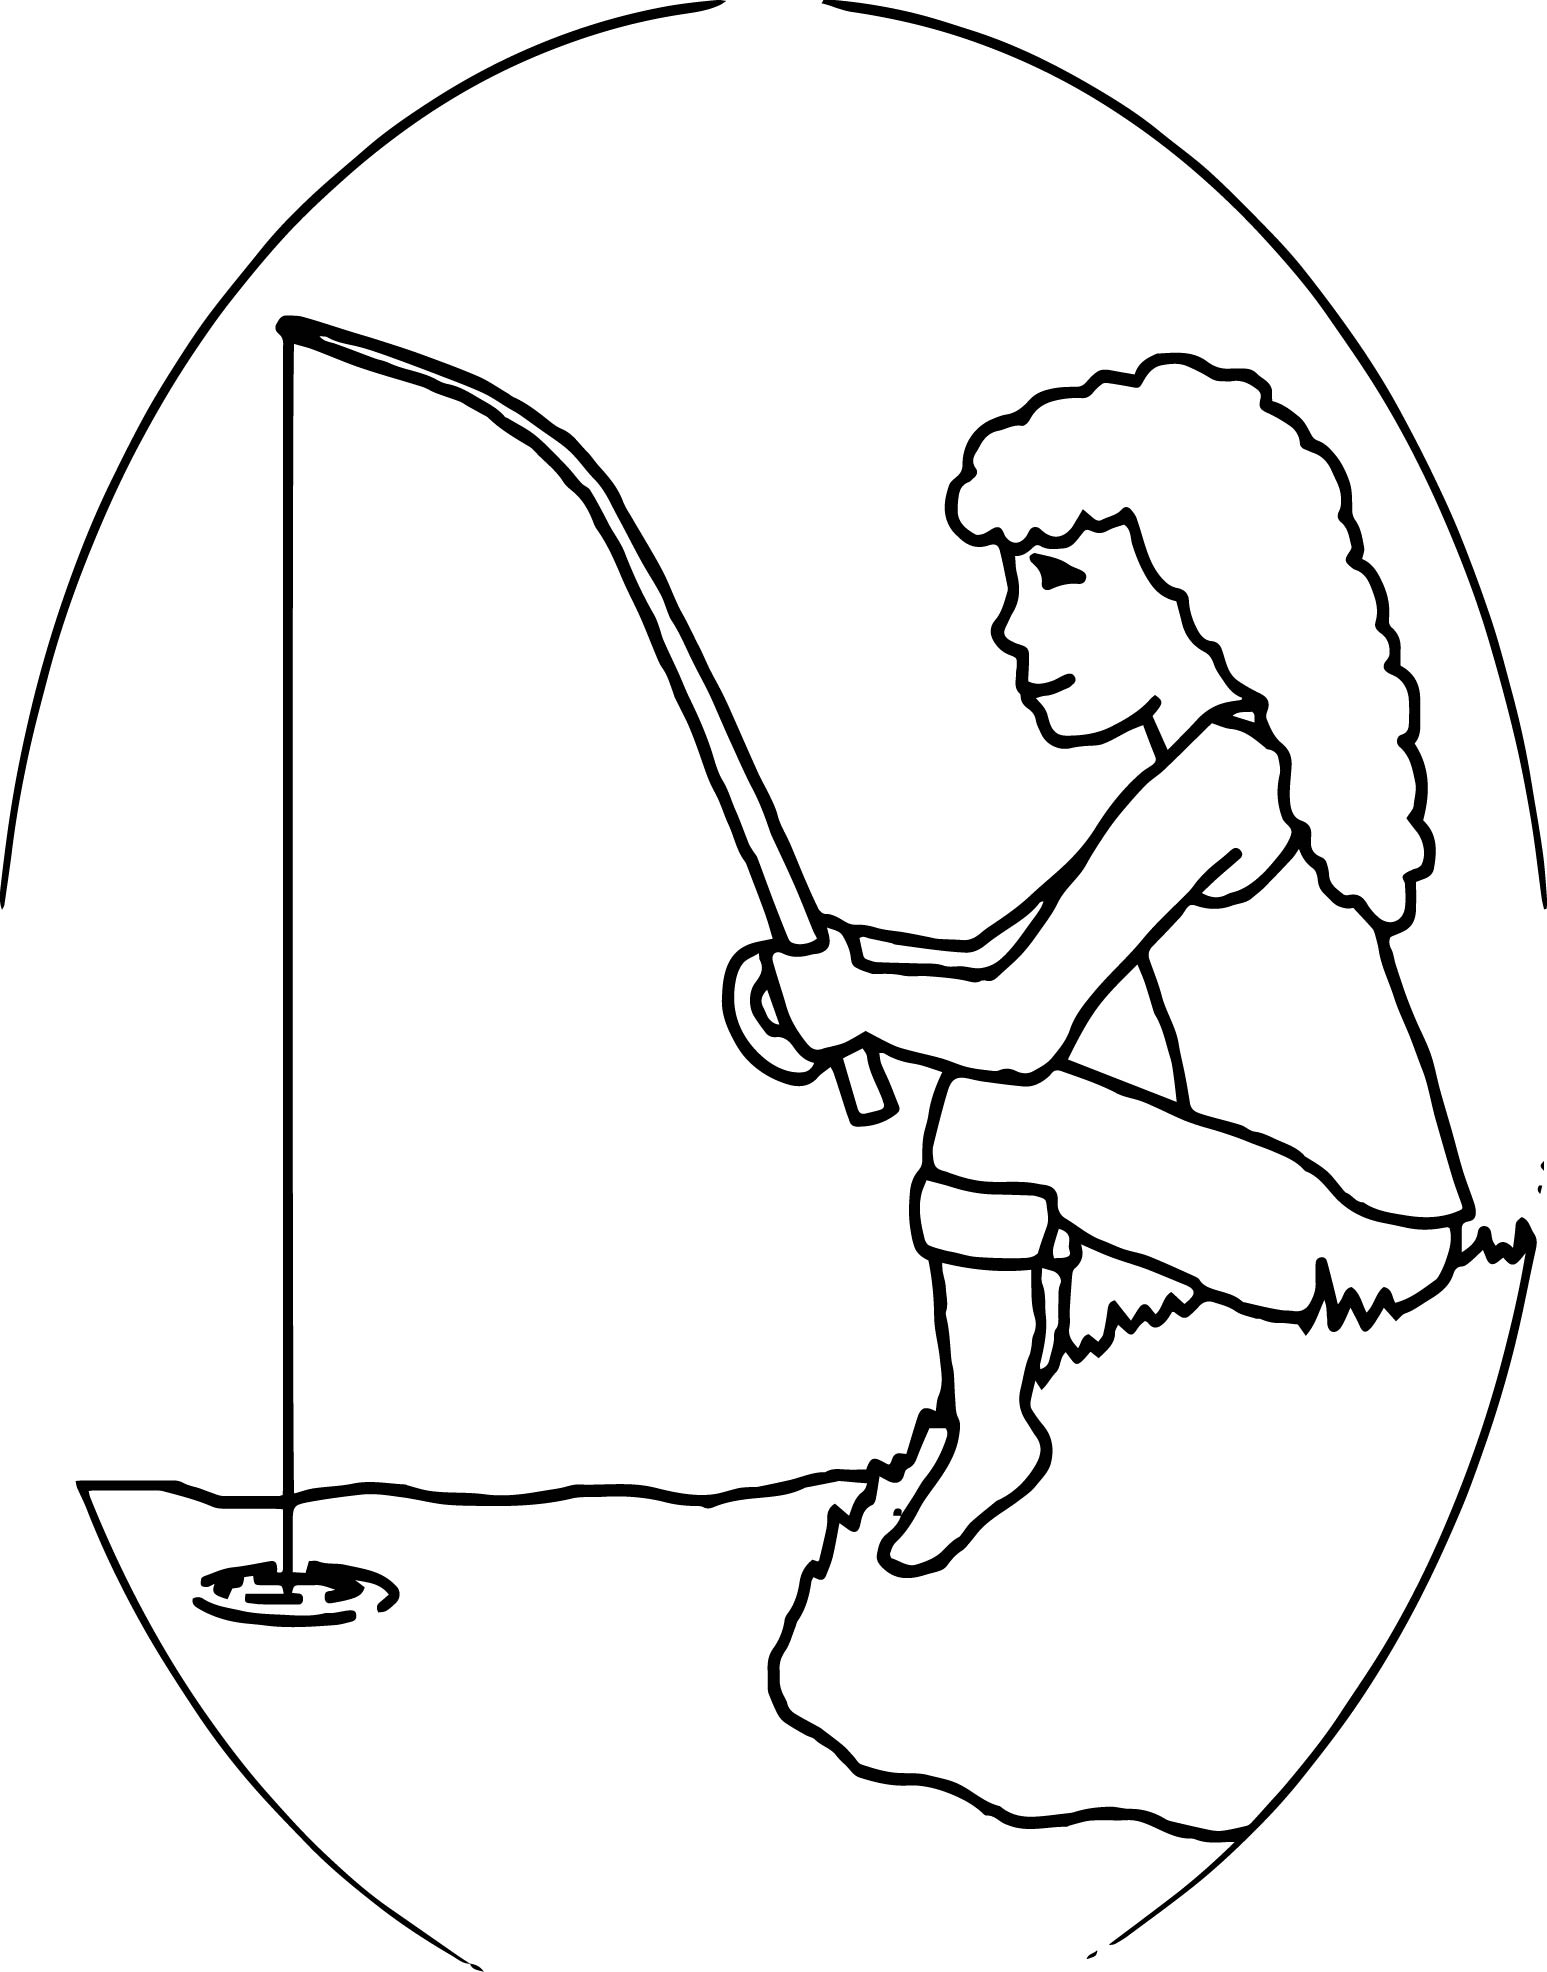 Fishing Coloring Pages Rainbow Hungry Camel Fishing